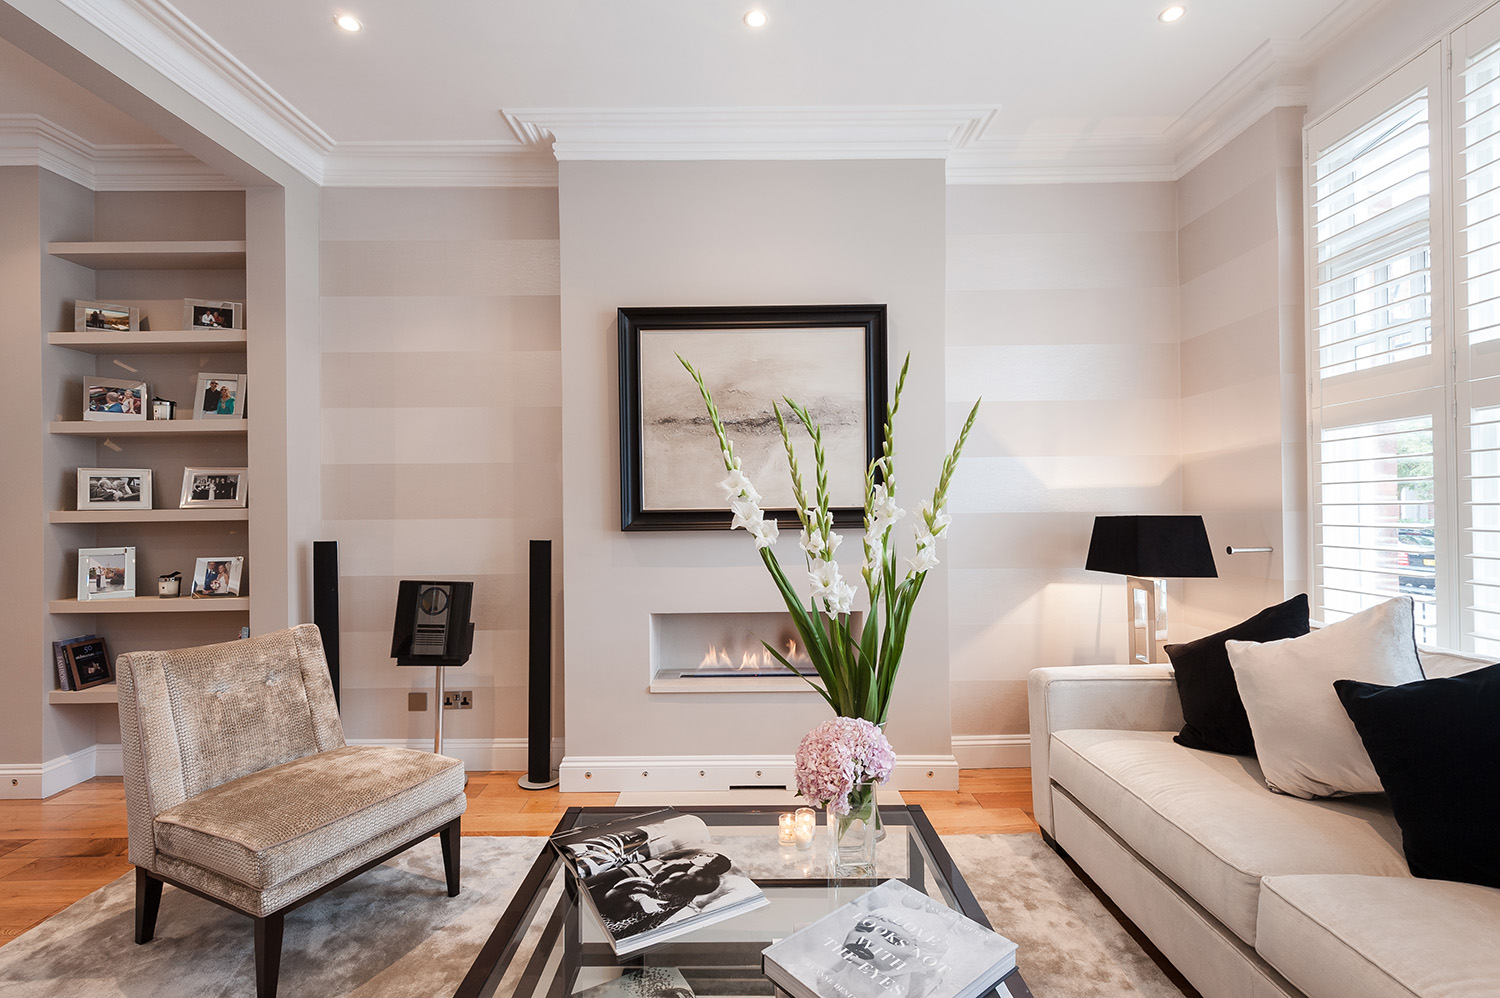 Fulham house sw6 design box london luxury interior for London house interior design